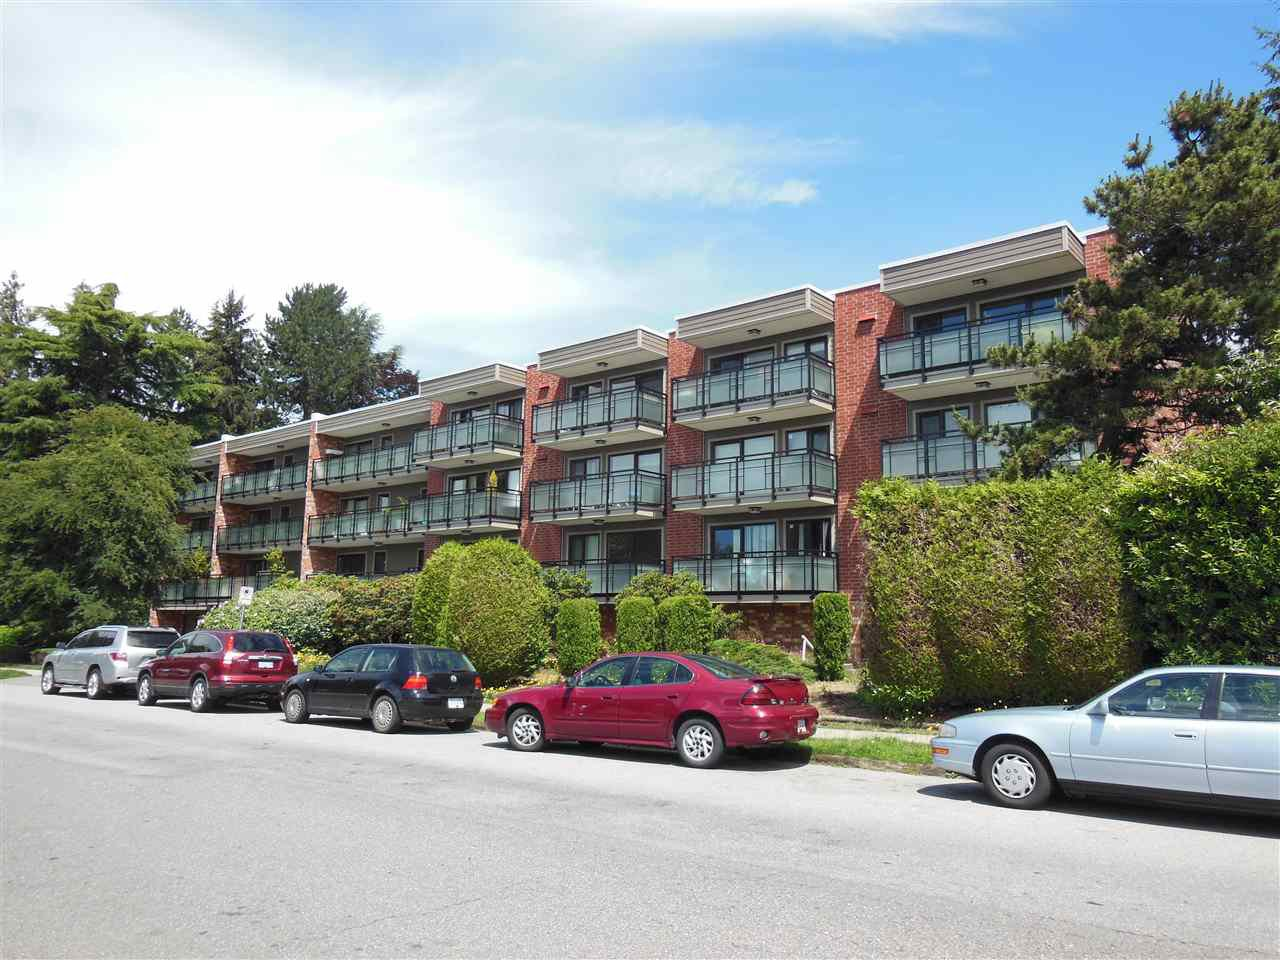 """Main Photo: 301 360 E 2ND Street in North Vancouver: Lower Lonsdale Condo for sale in """"Emerald Manor"""" : MLS®# R2084102"""